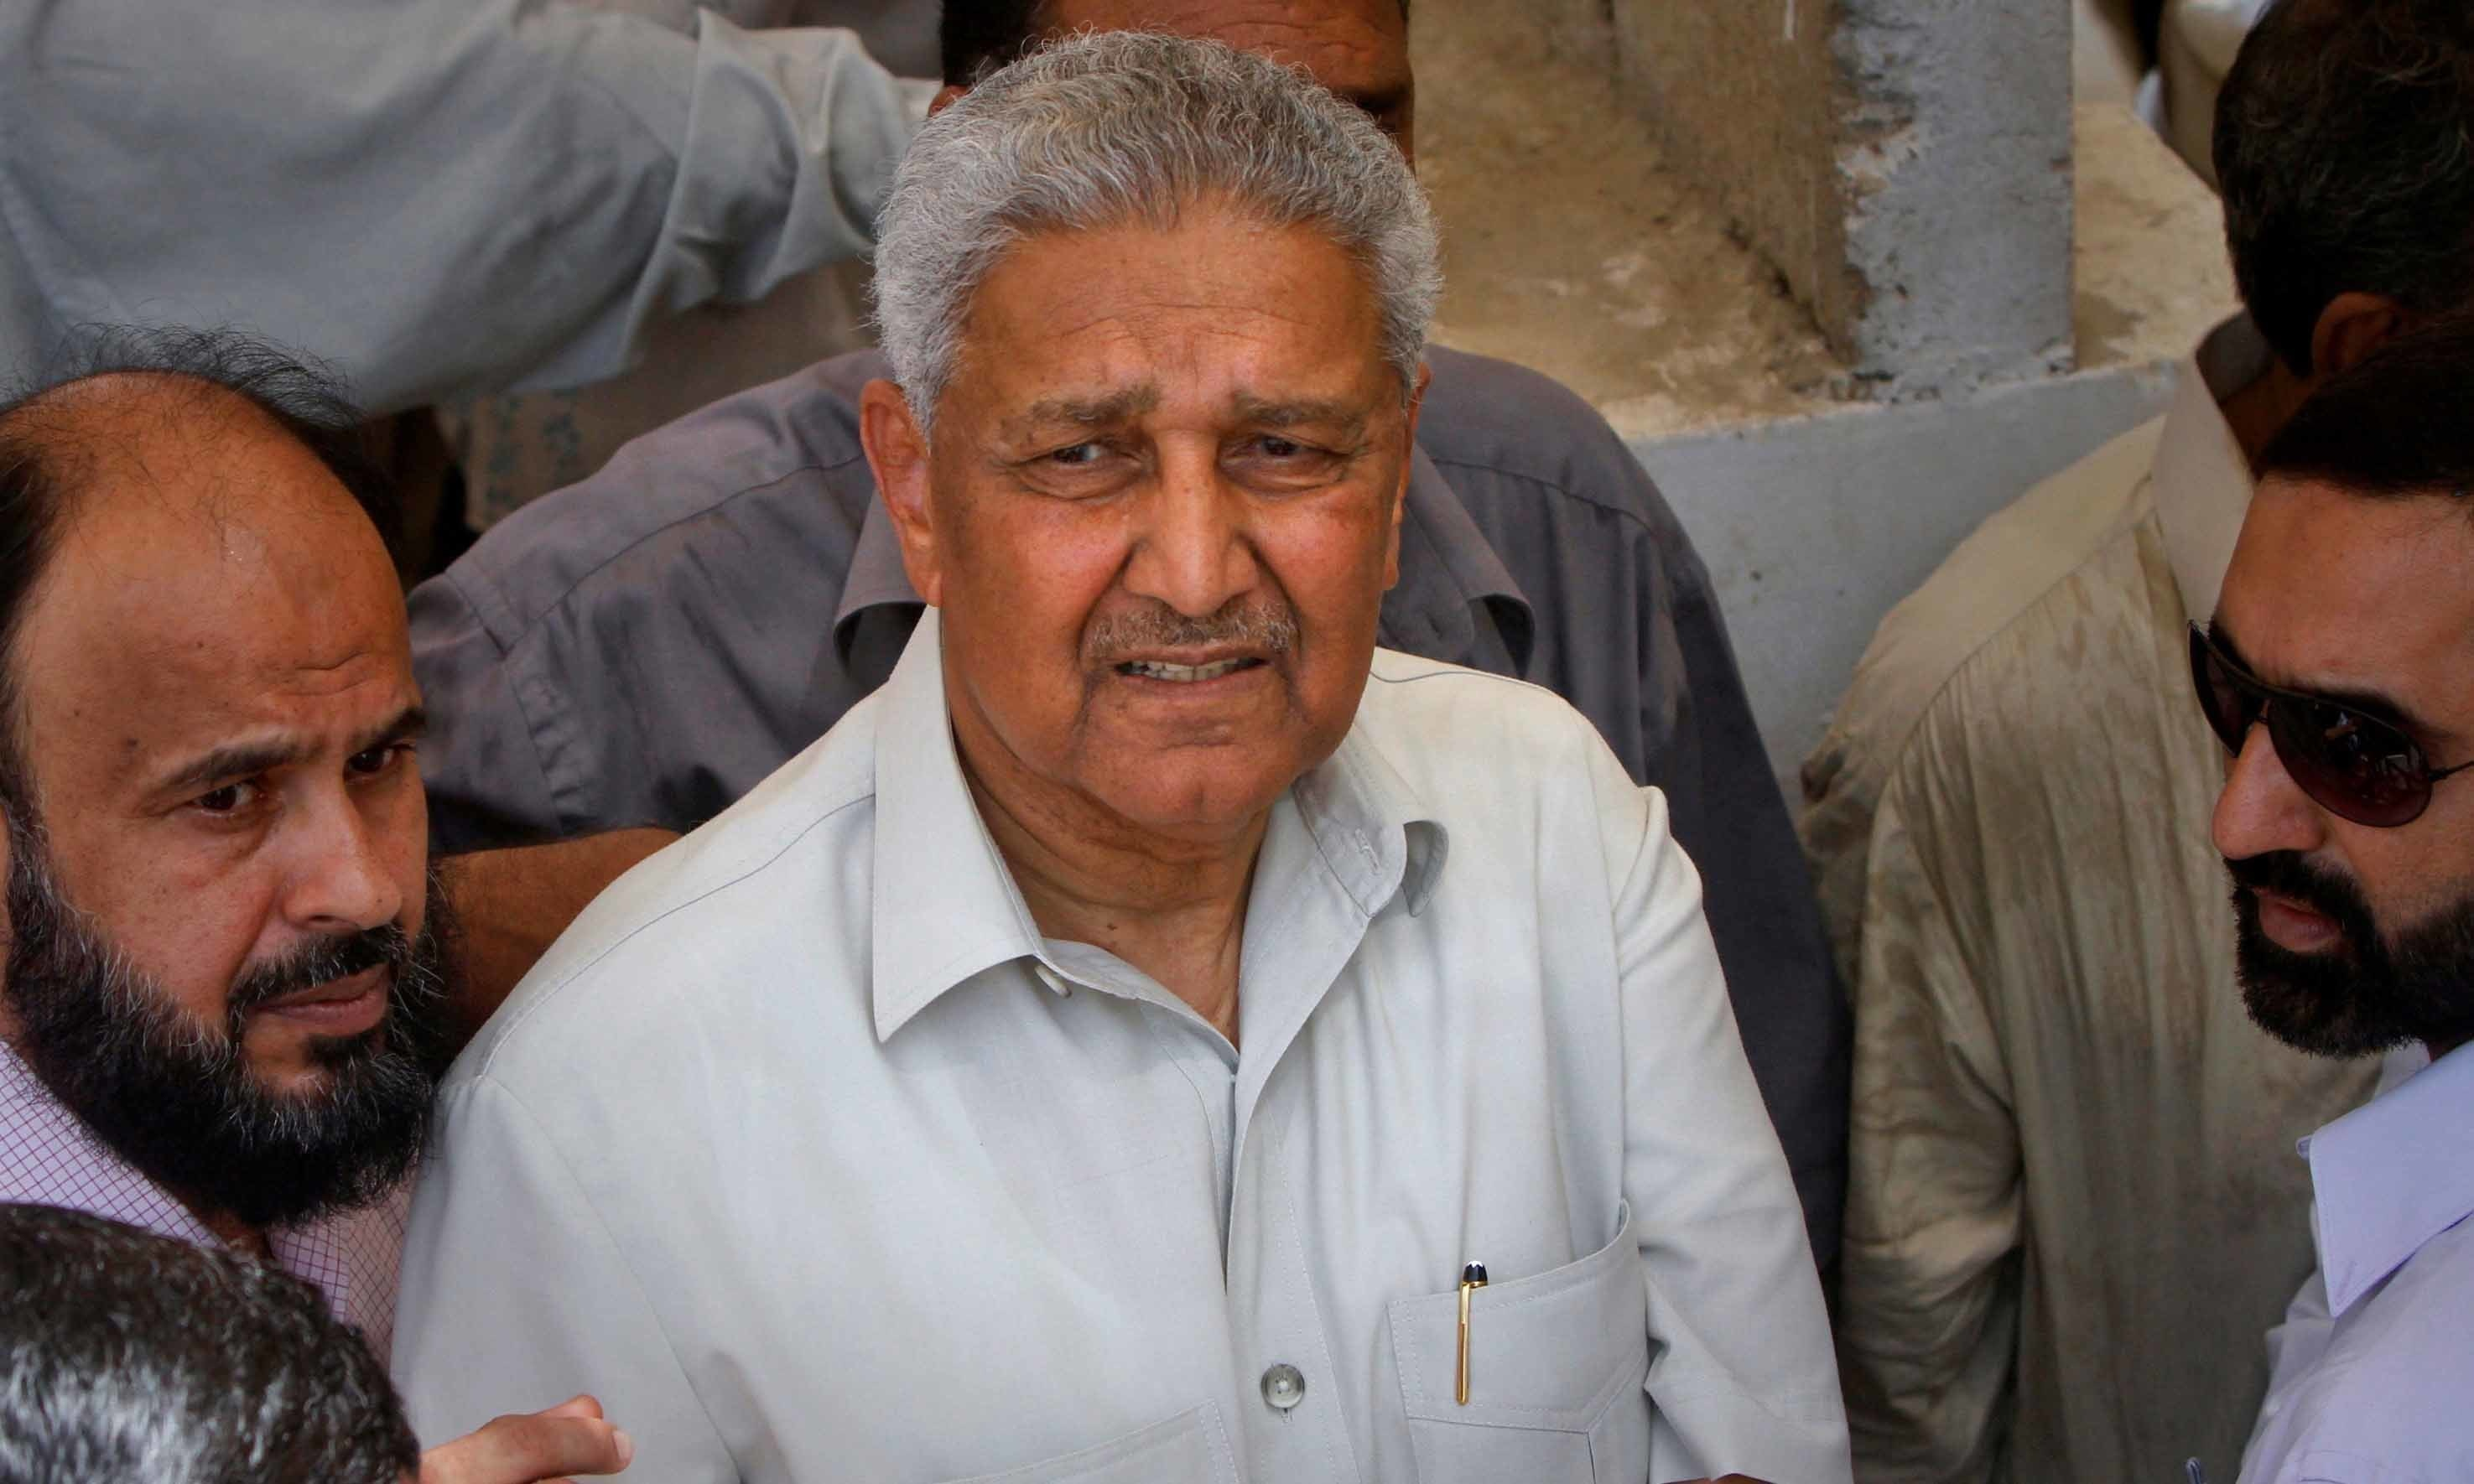 Pakistani nuclear scientist Abdul Qadeer Khan (C) is seen after attending a media silent prayer over the grave of his brother Abdul Rauf Khan, during his funeral services in Karachi May 8, 2011. — Reuters